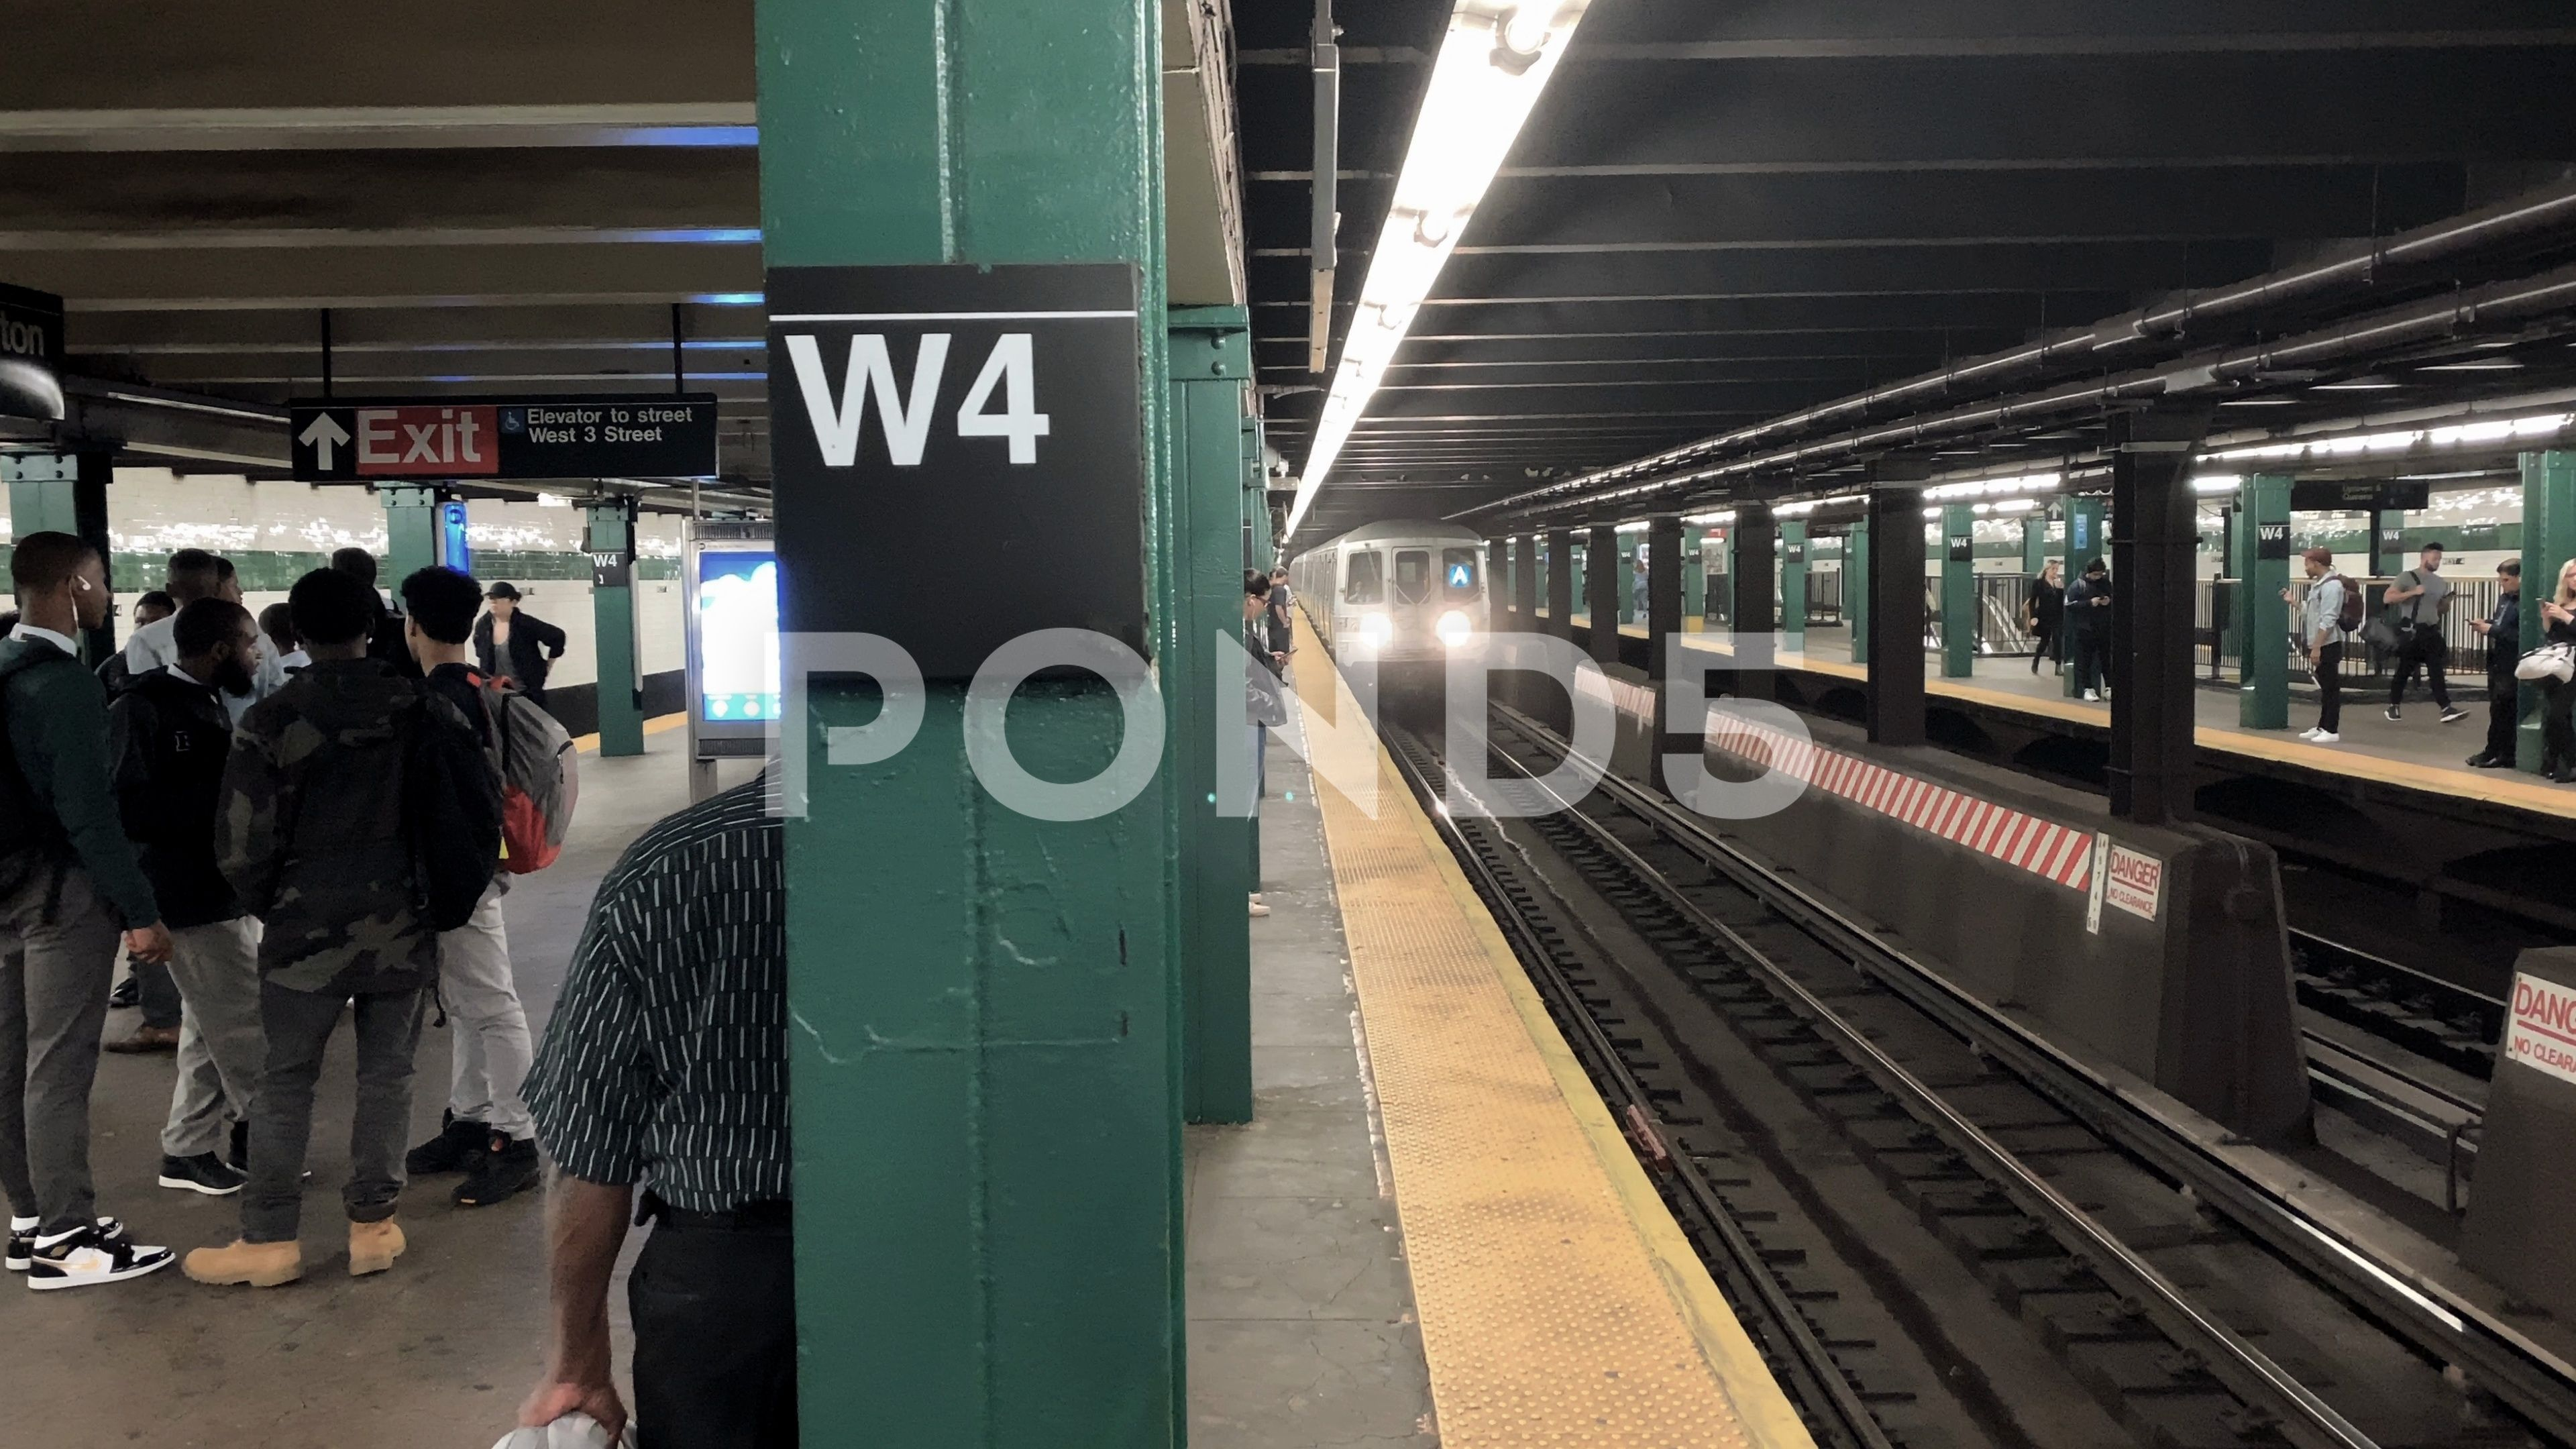 A Train Entering Subway Station Platform Head On West 4th